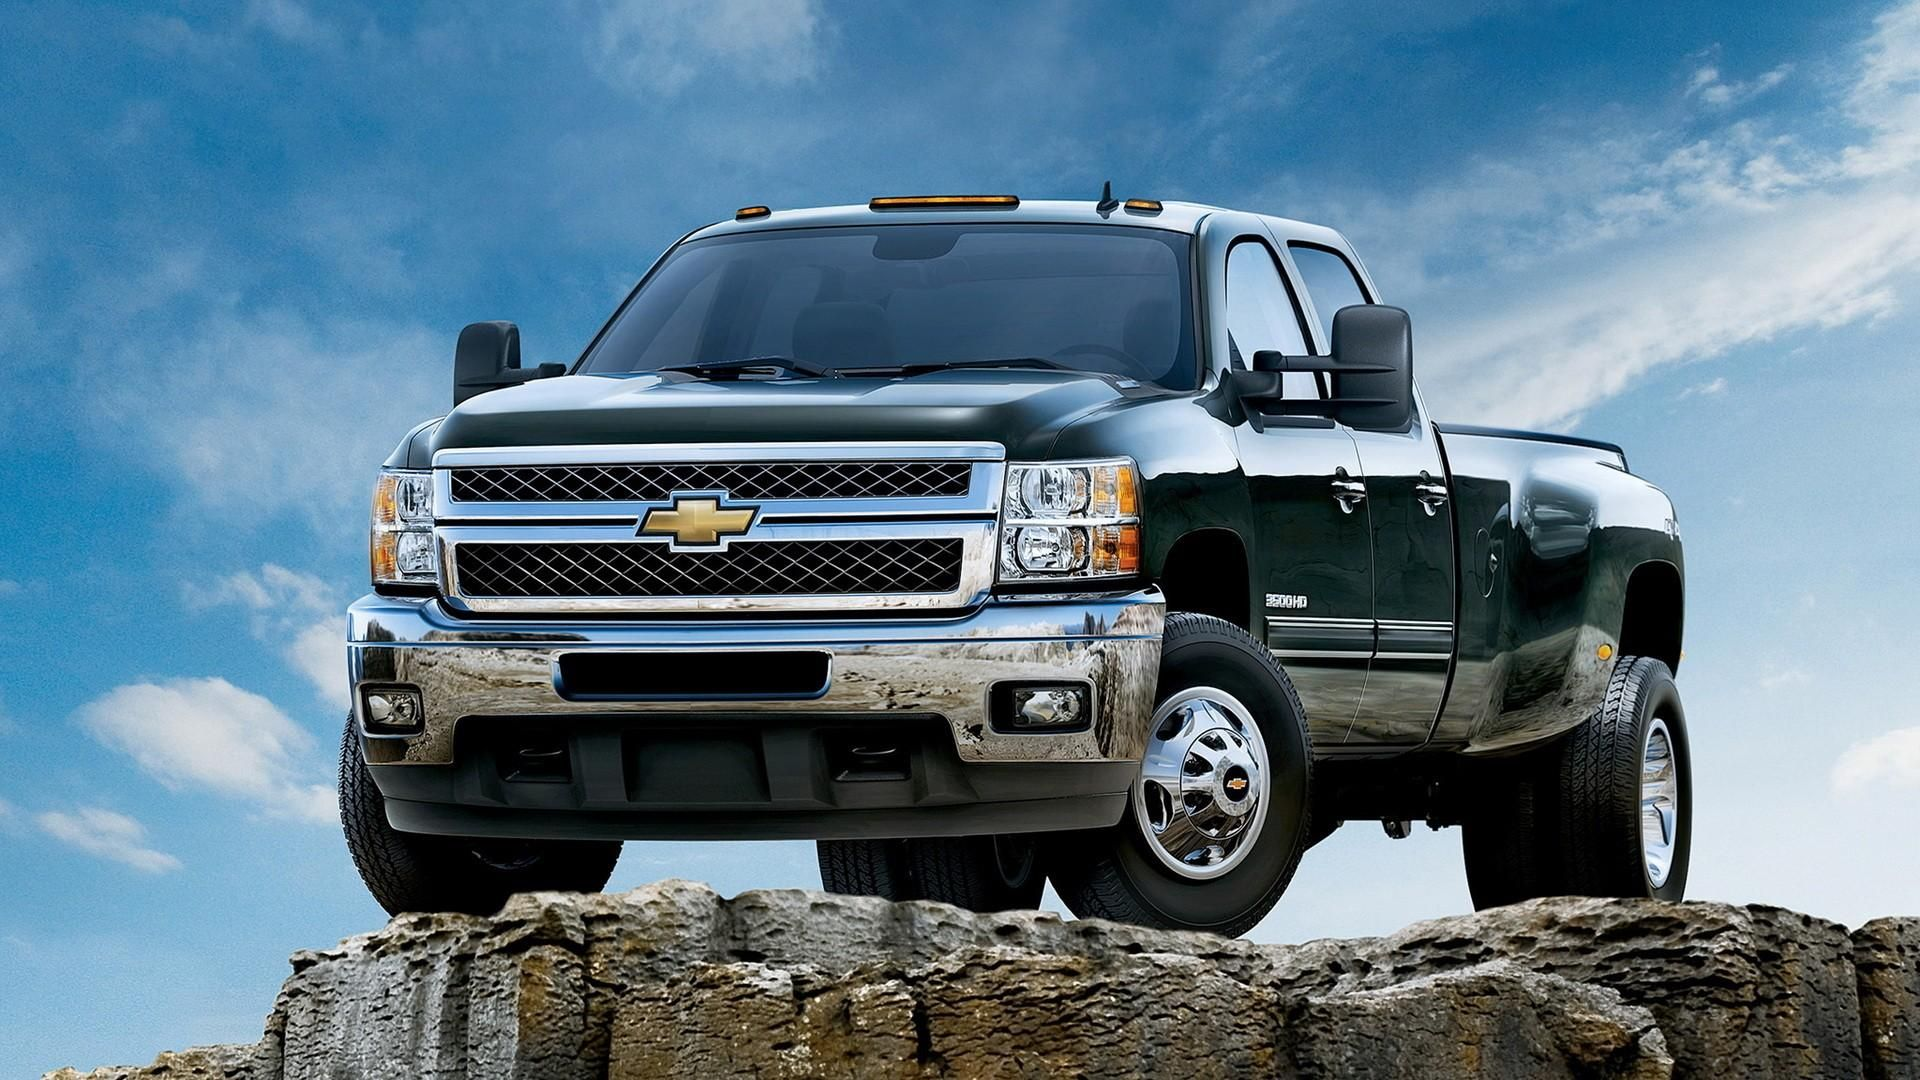 Diesel Truck Wallpaper 1920 1080 Lifted Truck Wallpapers 45 Wallpapers Adorable Wallpapers Chevy Silverado Chevy Trucks Chevrolet Silverado